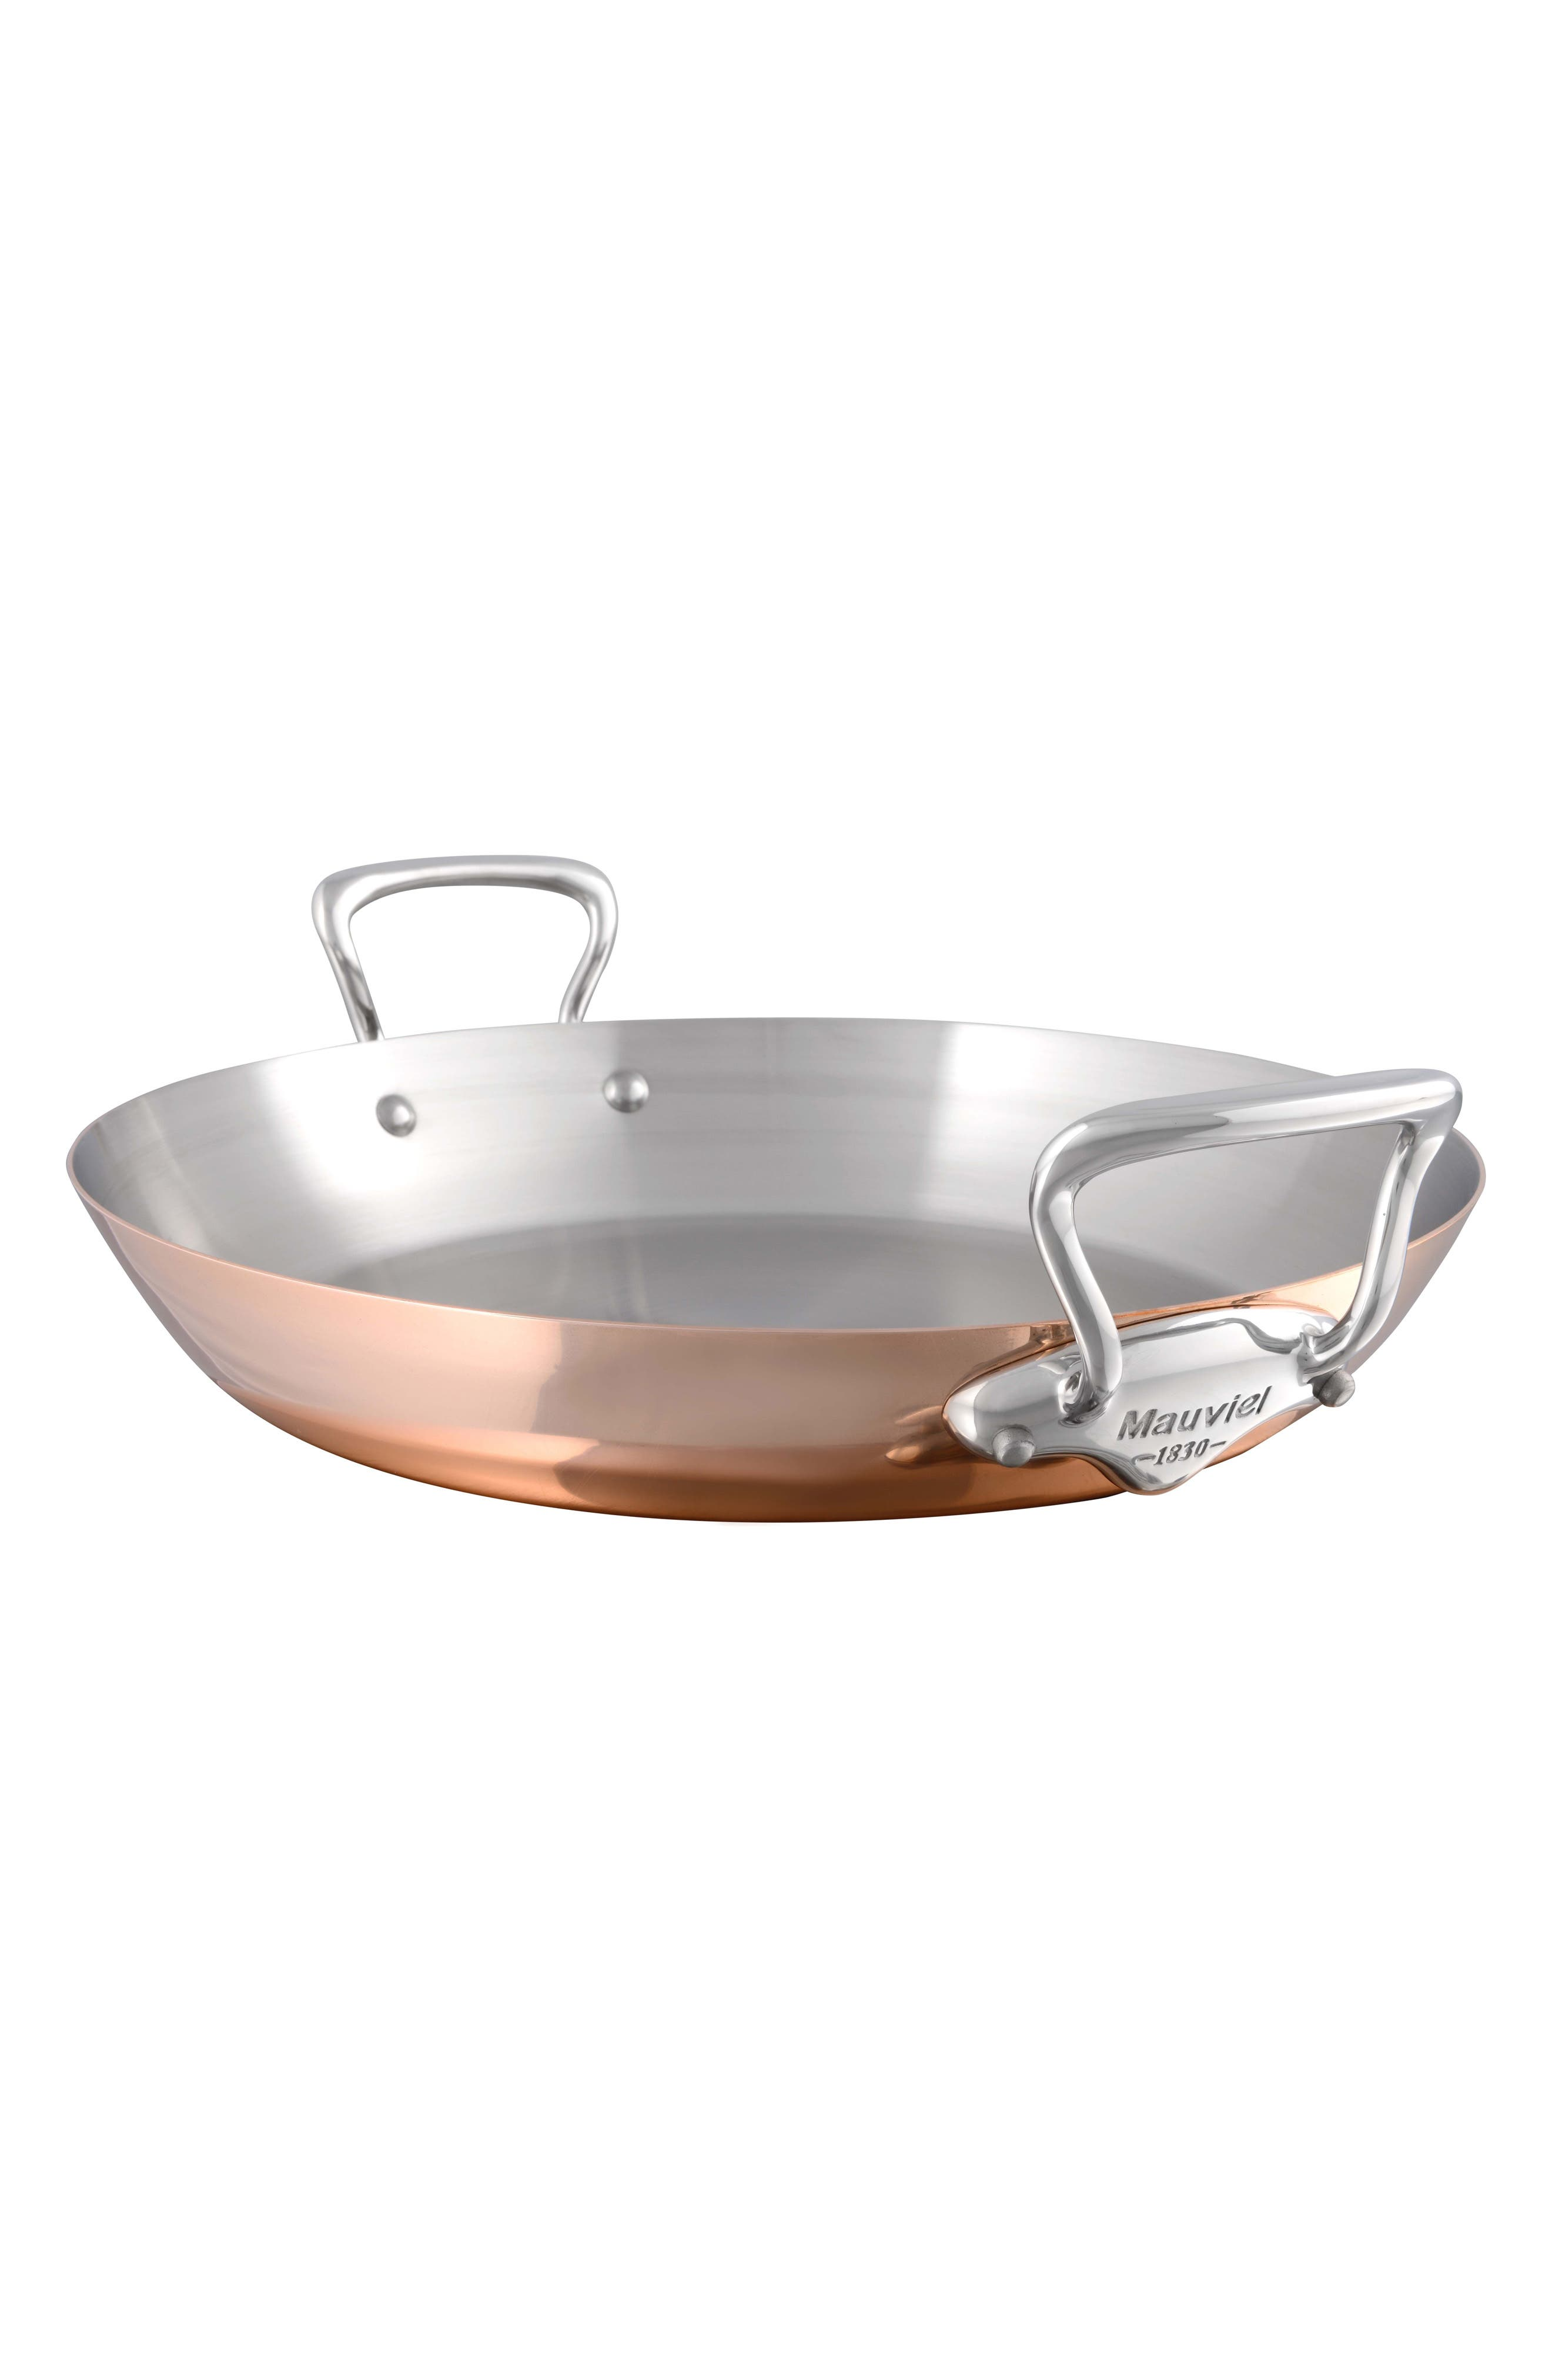 Mauviel M'heritage M'150s Copper & Stainless Steel Paella Pan